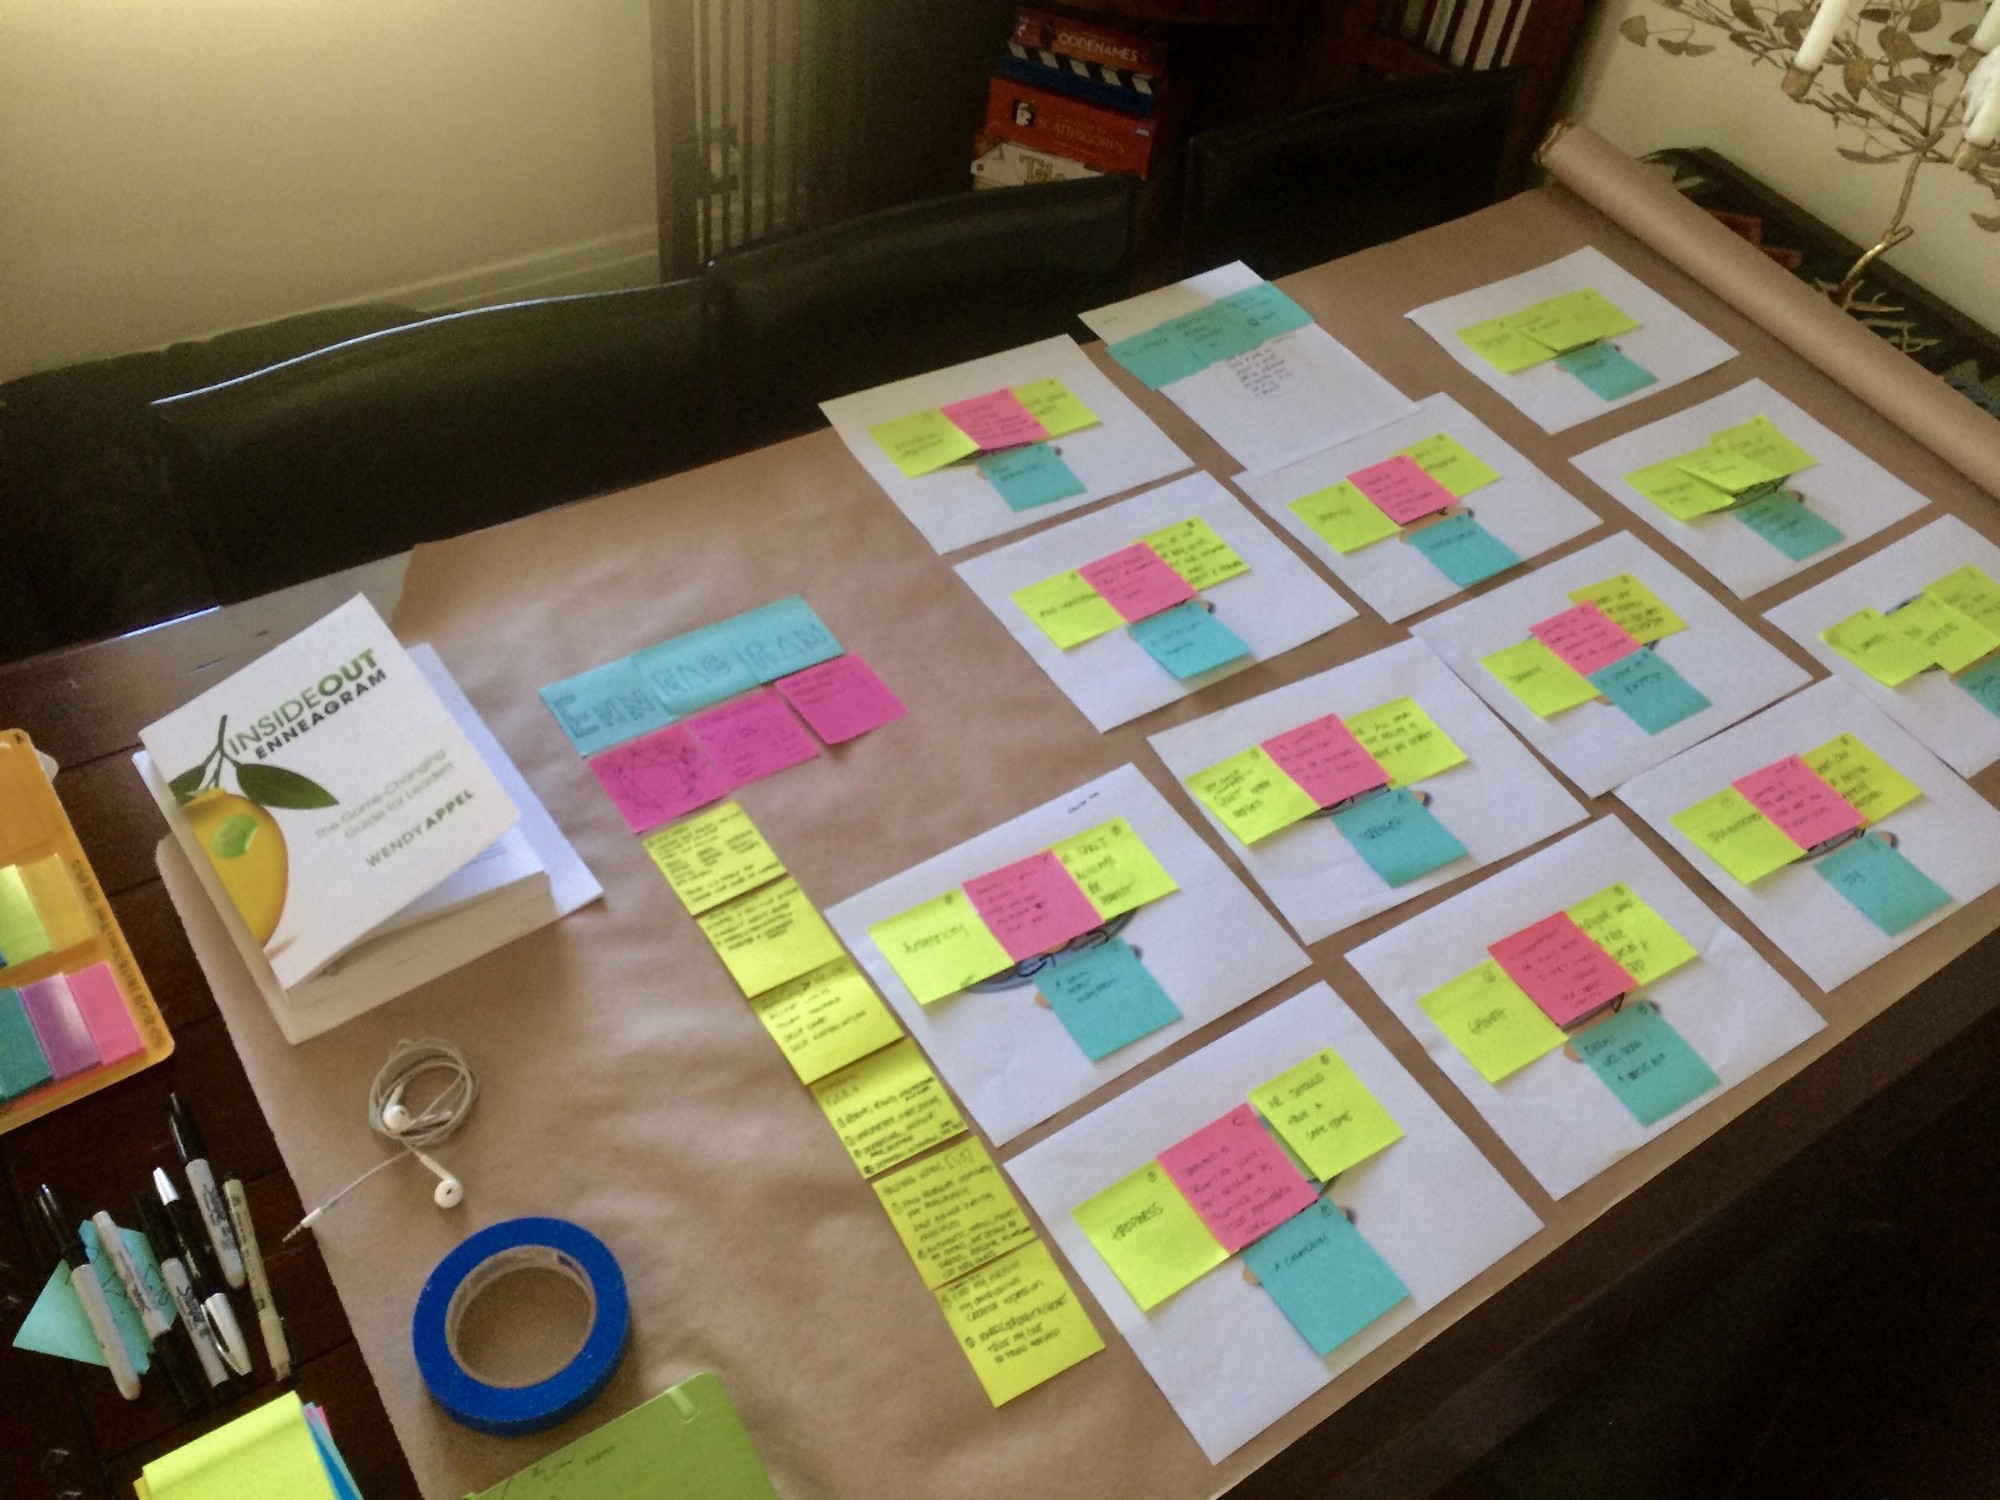 We did a session on career vision finding … many Post-It notes later, I was on track.